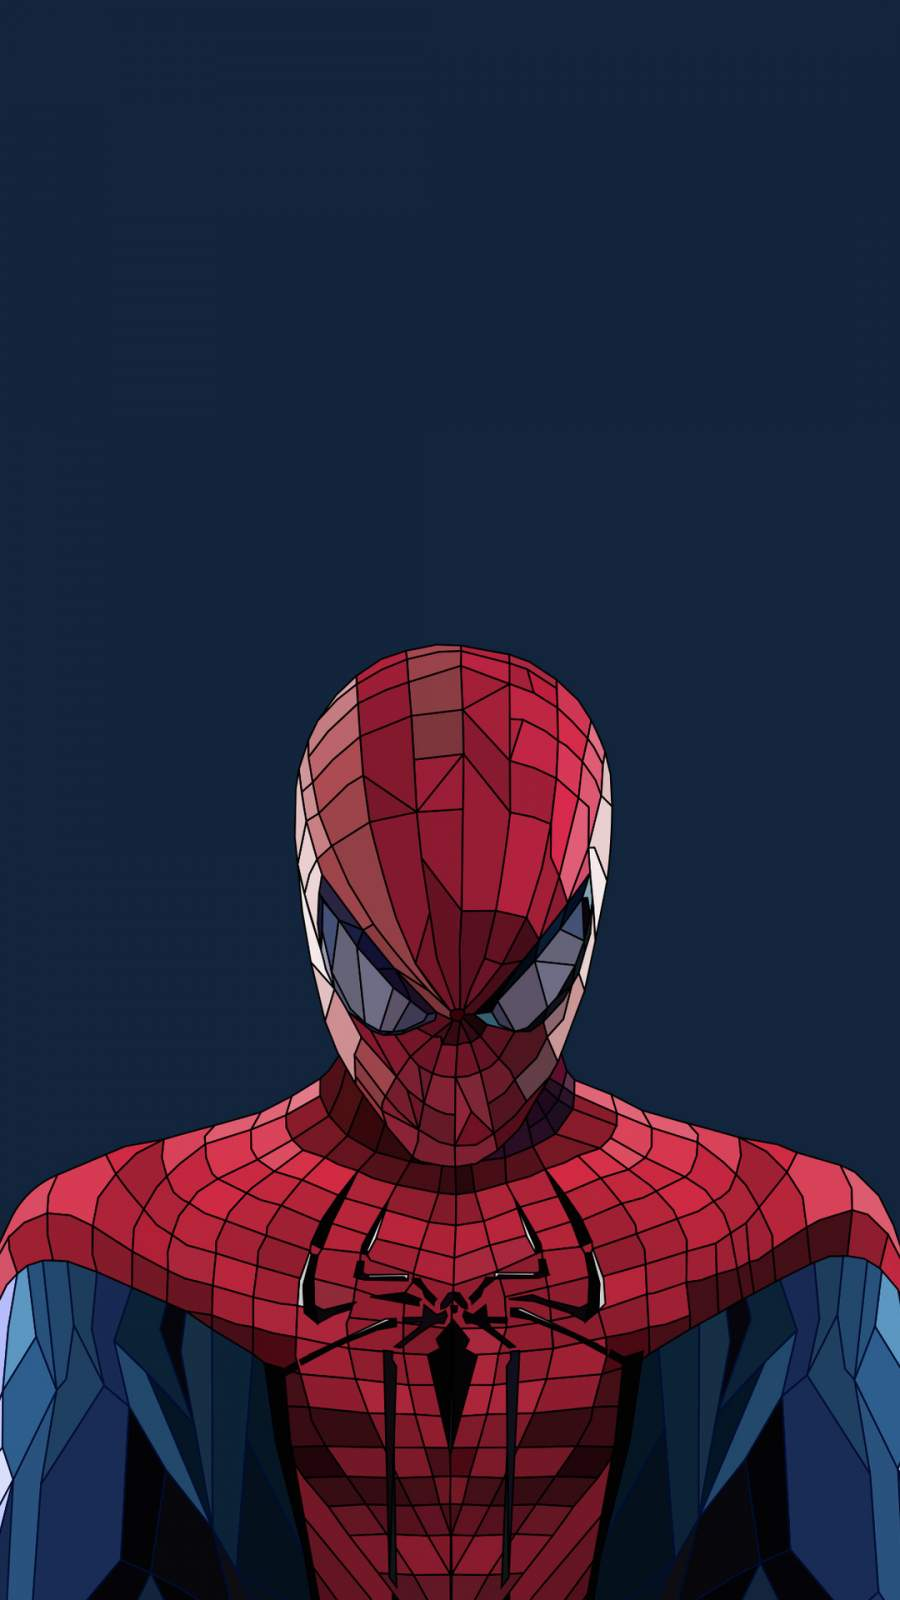 Amazing Spiderman Mobile Wallpapers, HD Backgronds